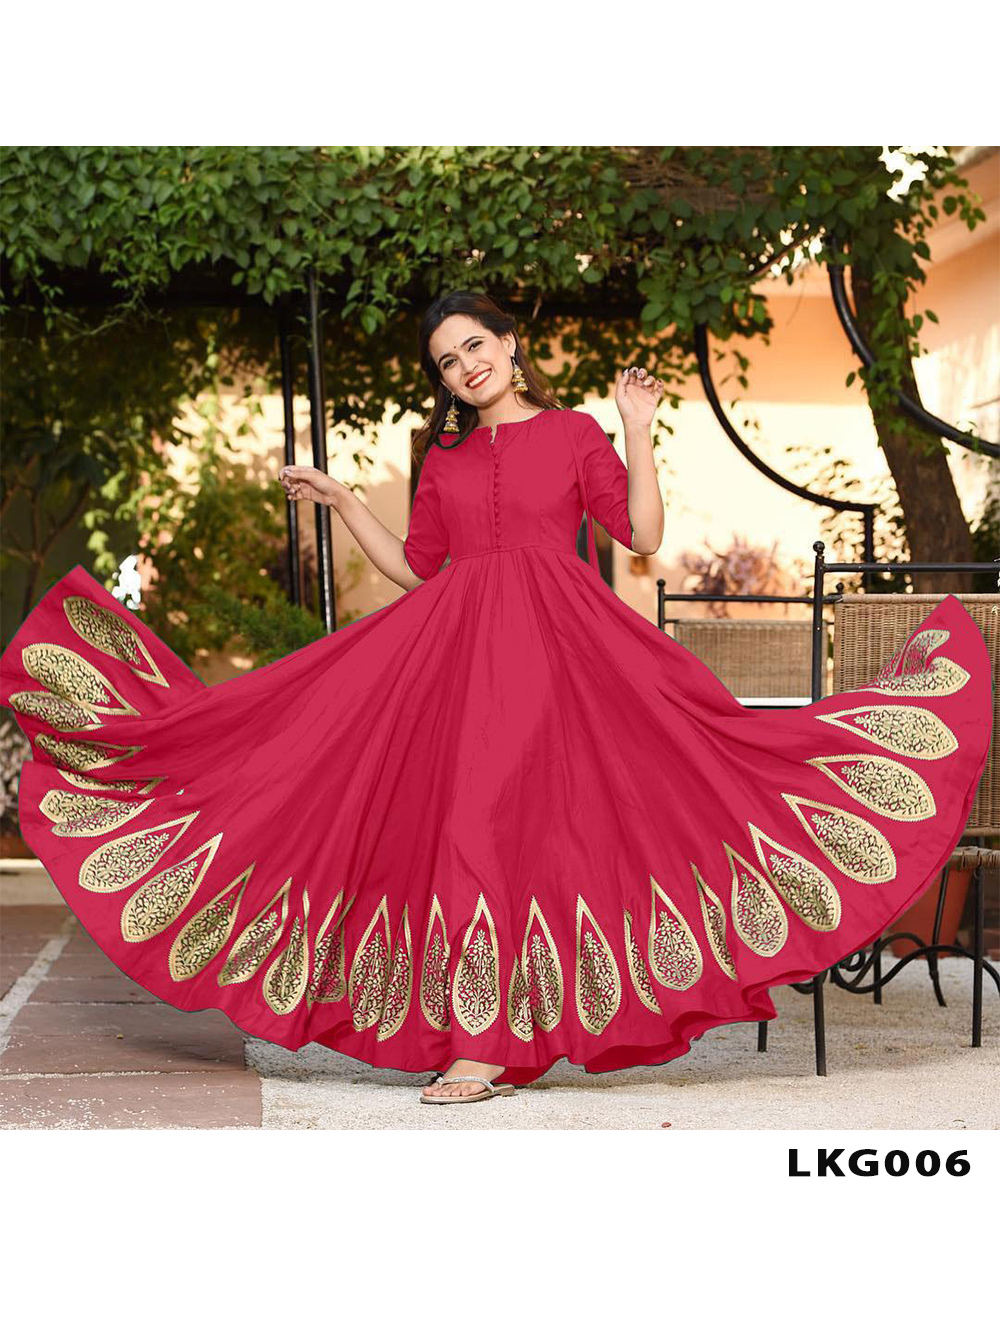 LGK006 Long Gown Style Kurti Collection